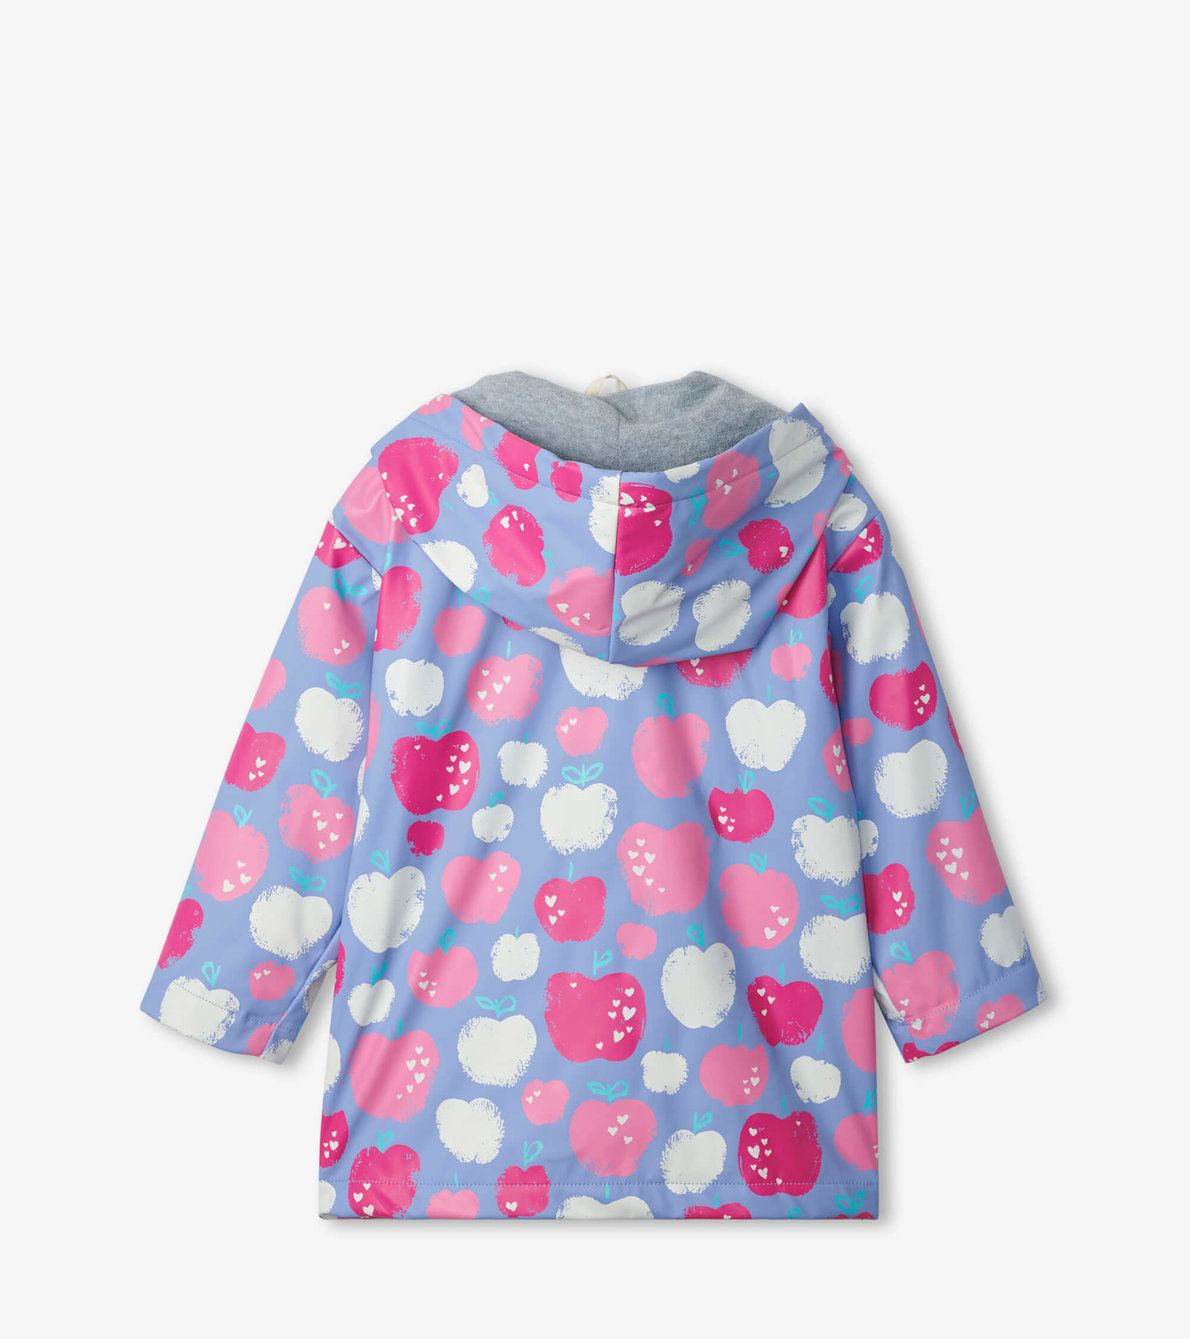 View larger image of Stamped Apples Raincoat